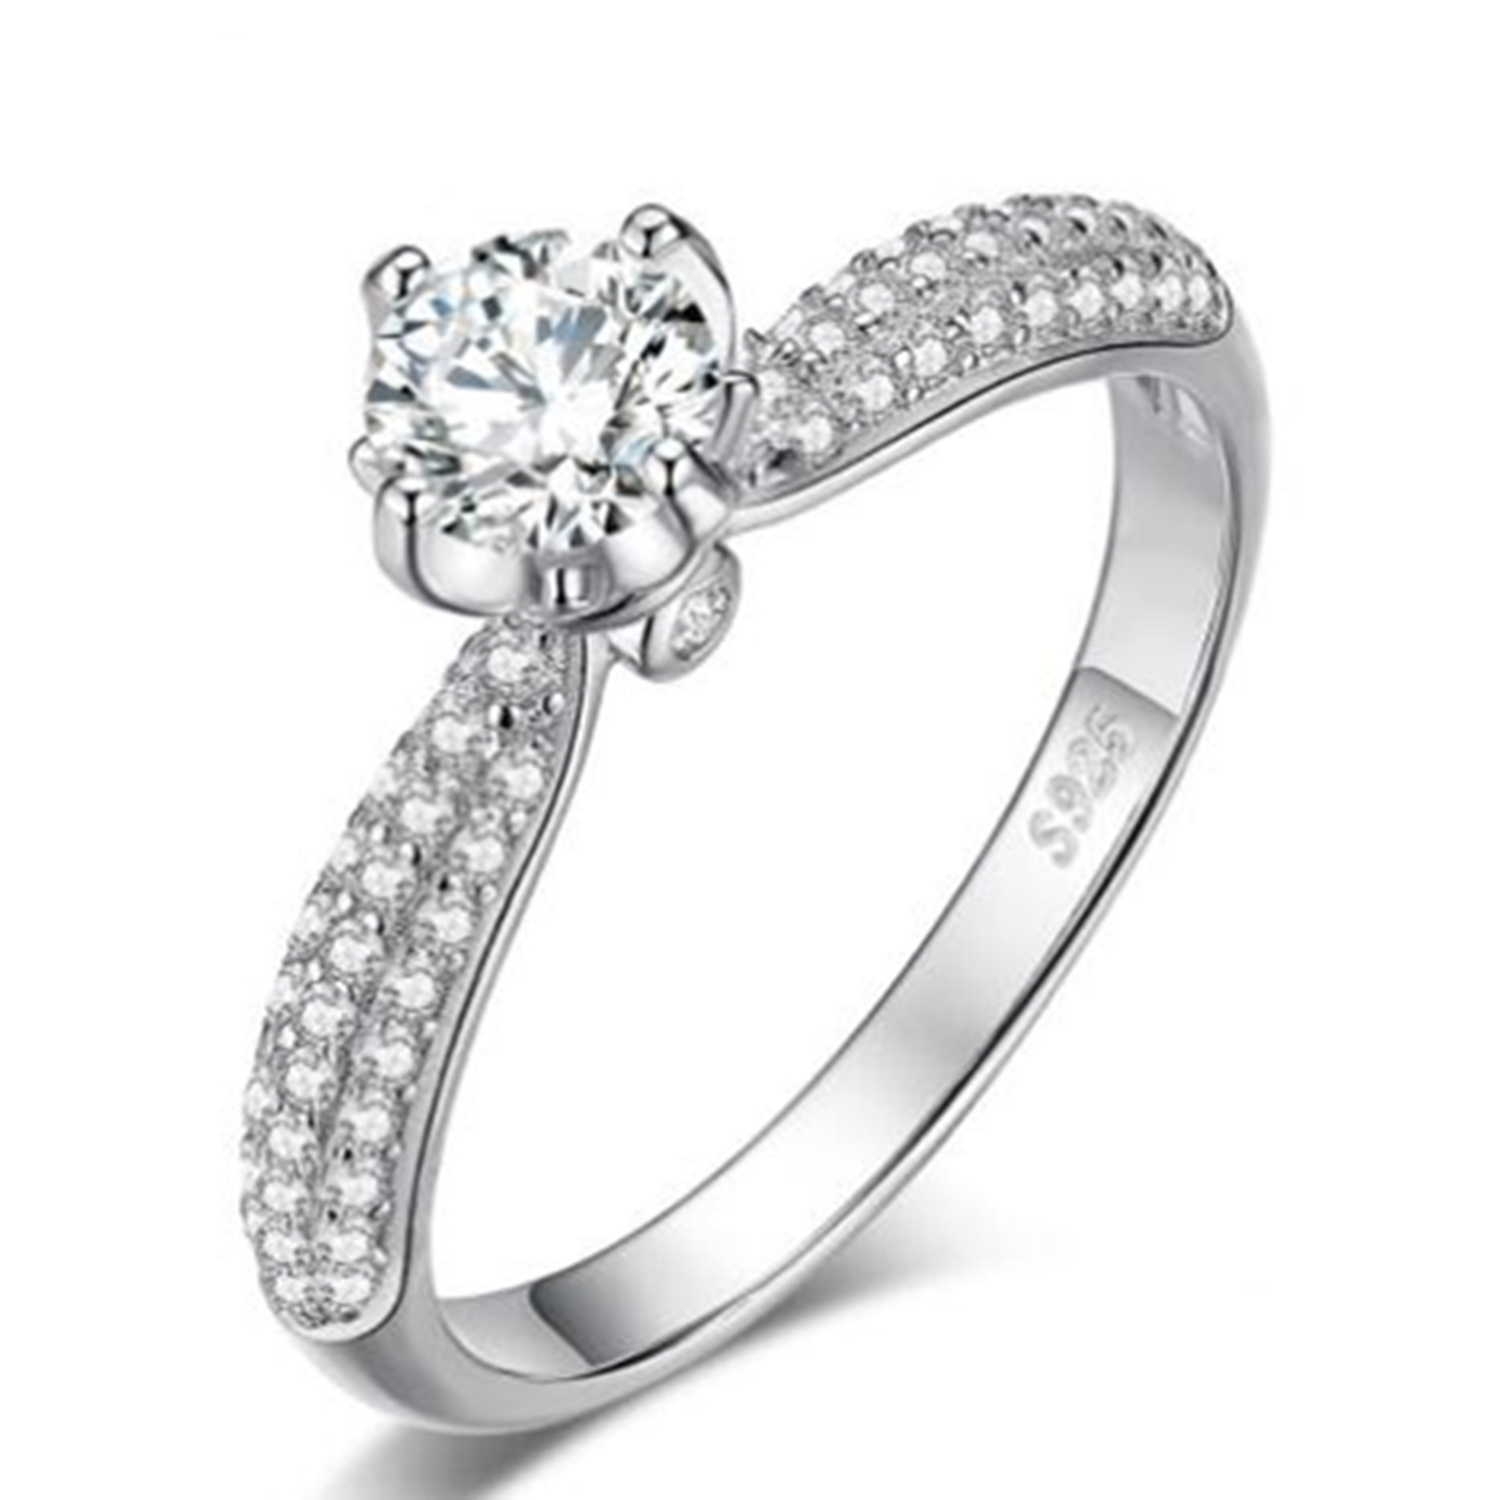 China Classic Solitaire Cubic Zirconia Engagement Ring 925 Sterling Silver Trendy Ring Women Jewelry China Solitaire Ring And Engagement Ring Price